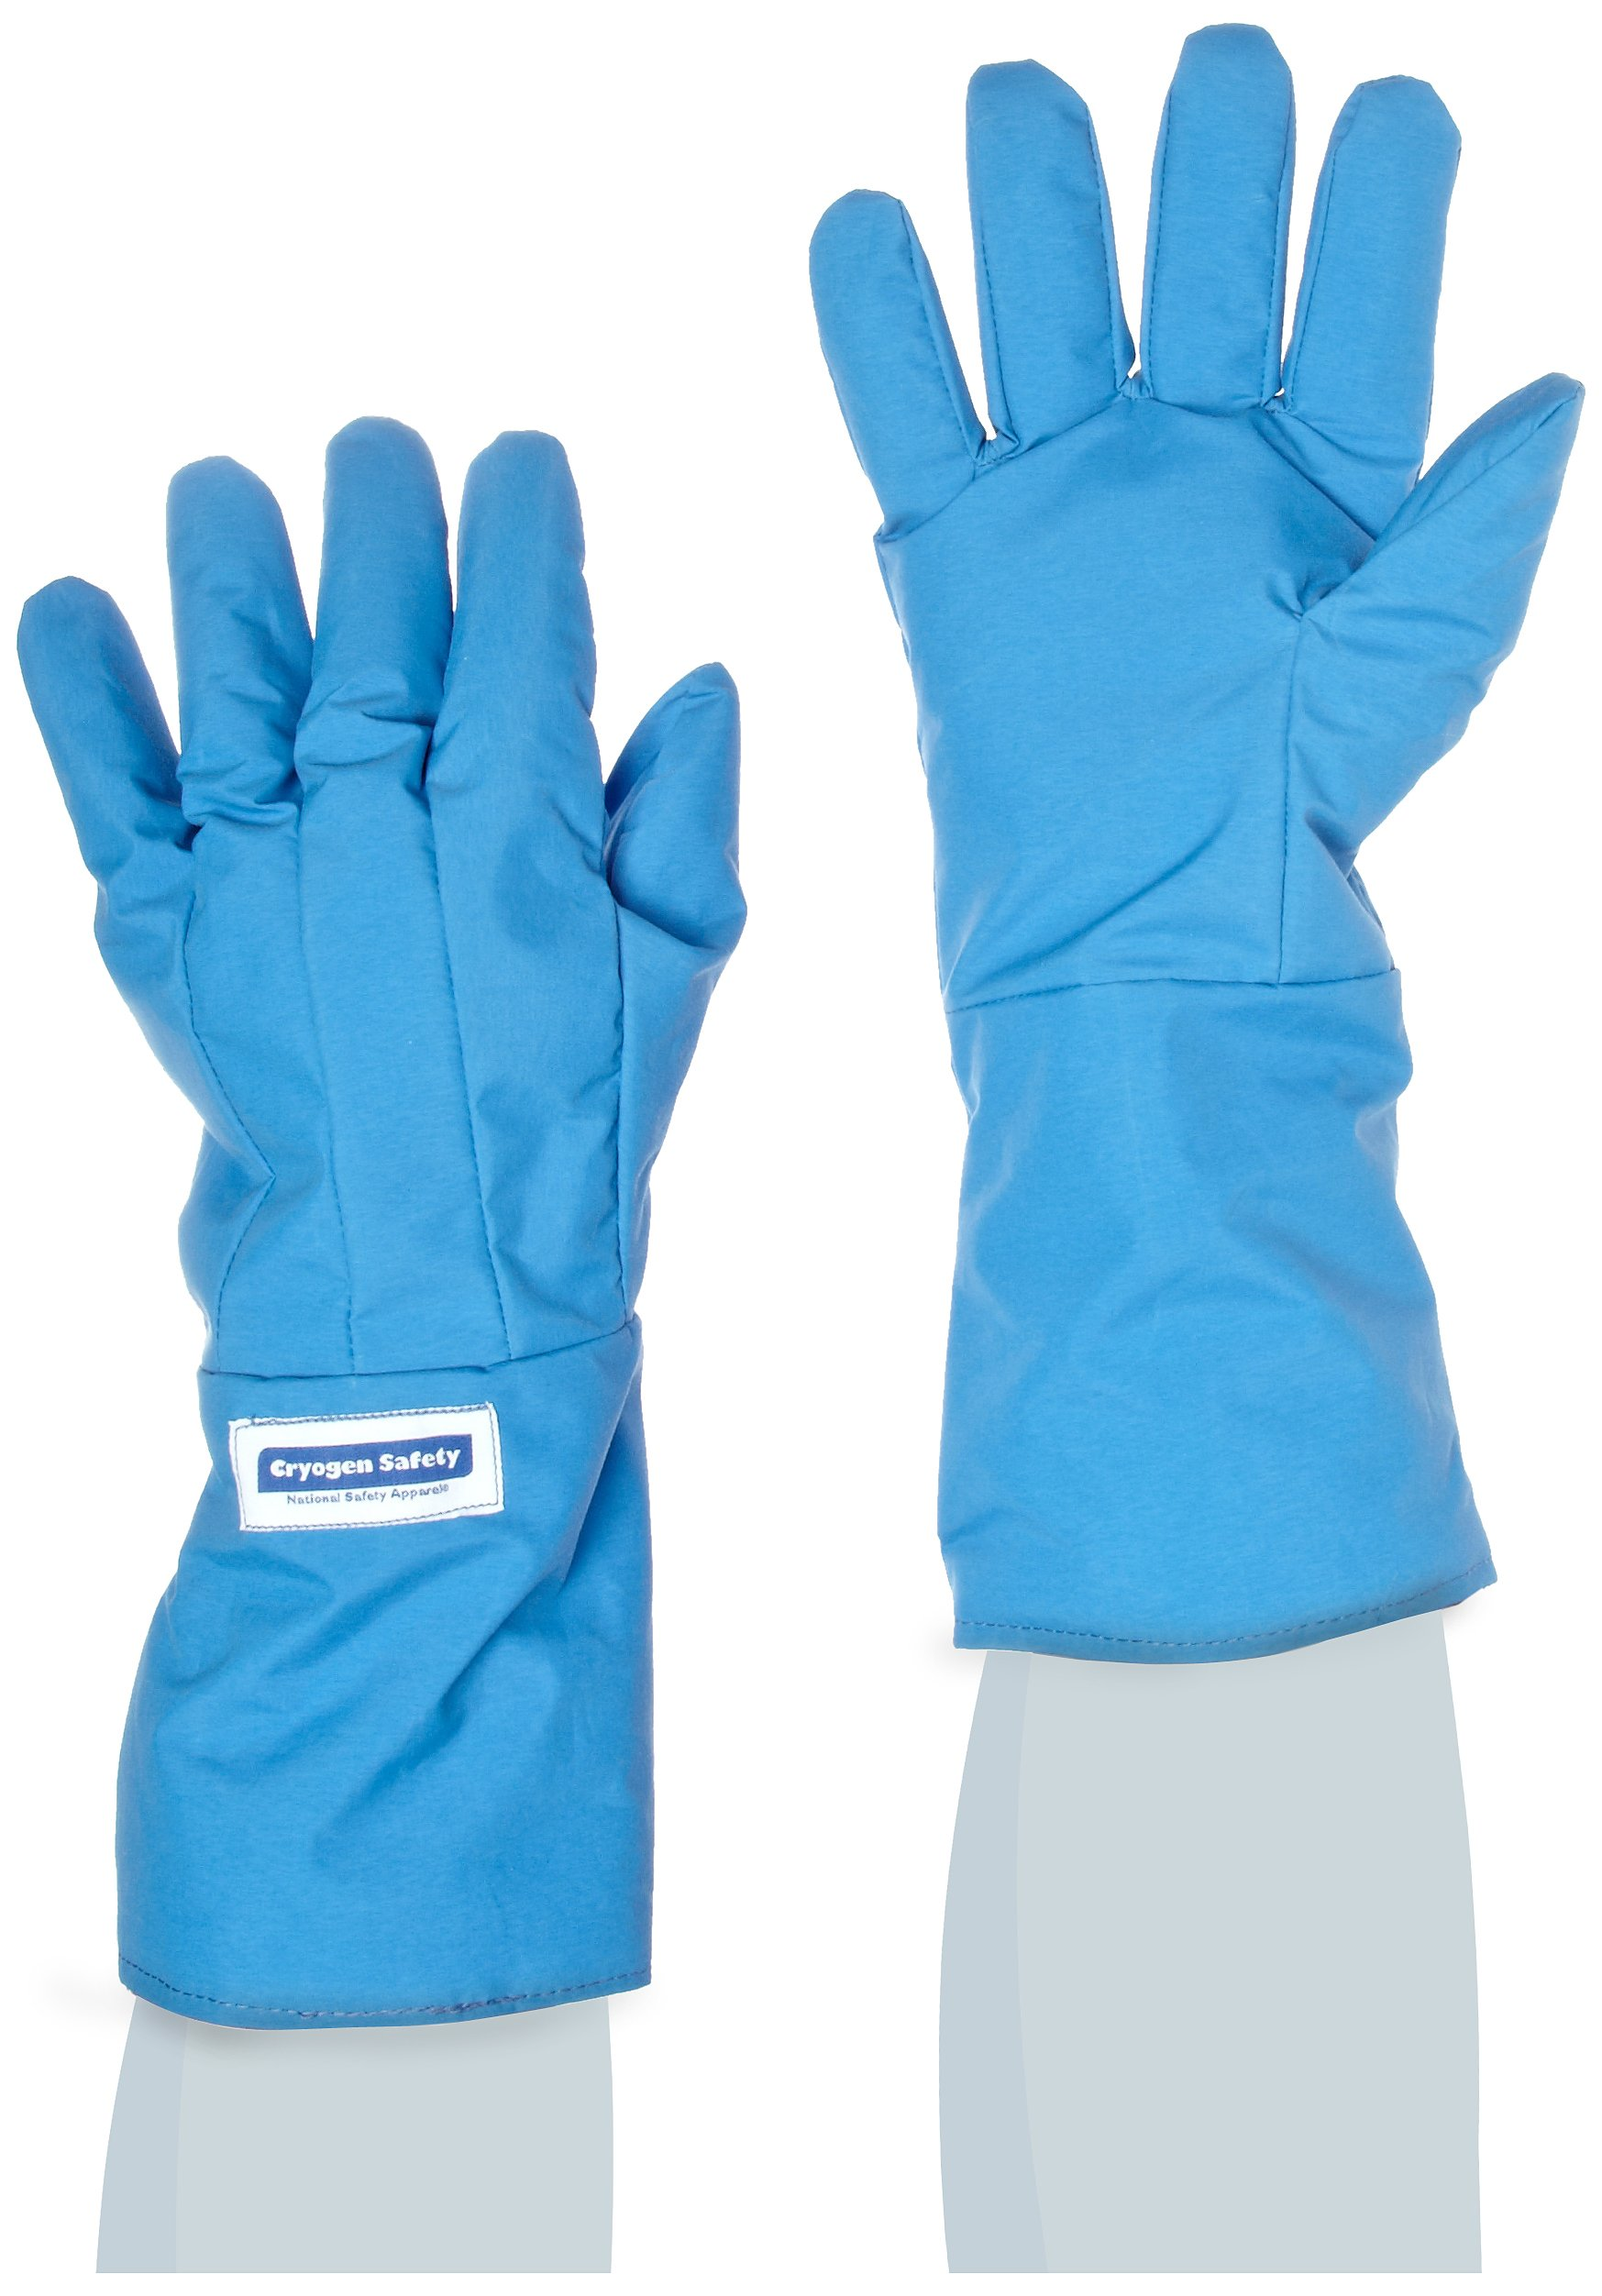 National Safety Apparel G99CRBERLGMA Nylon Taslan and PTFE Mid-Arm Standard Water Resistant Safety Glove, Cryogenic, 14'' - 15'' Length, Large, Blue by National Safety Apparel Inc (Image #1)